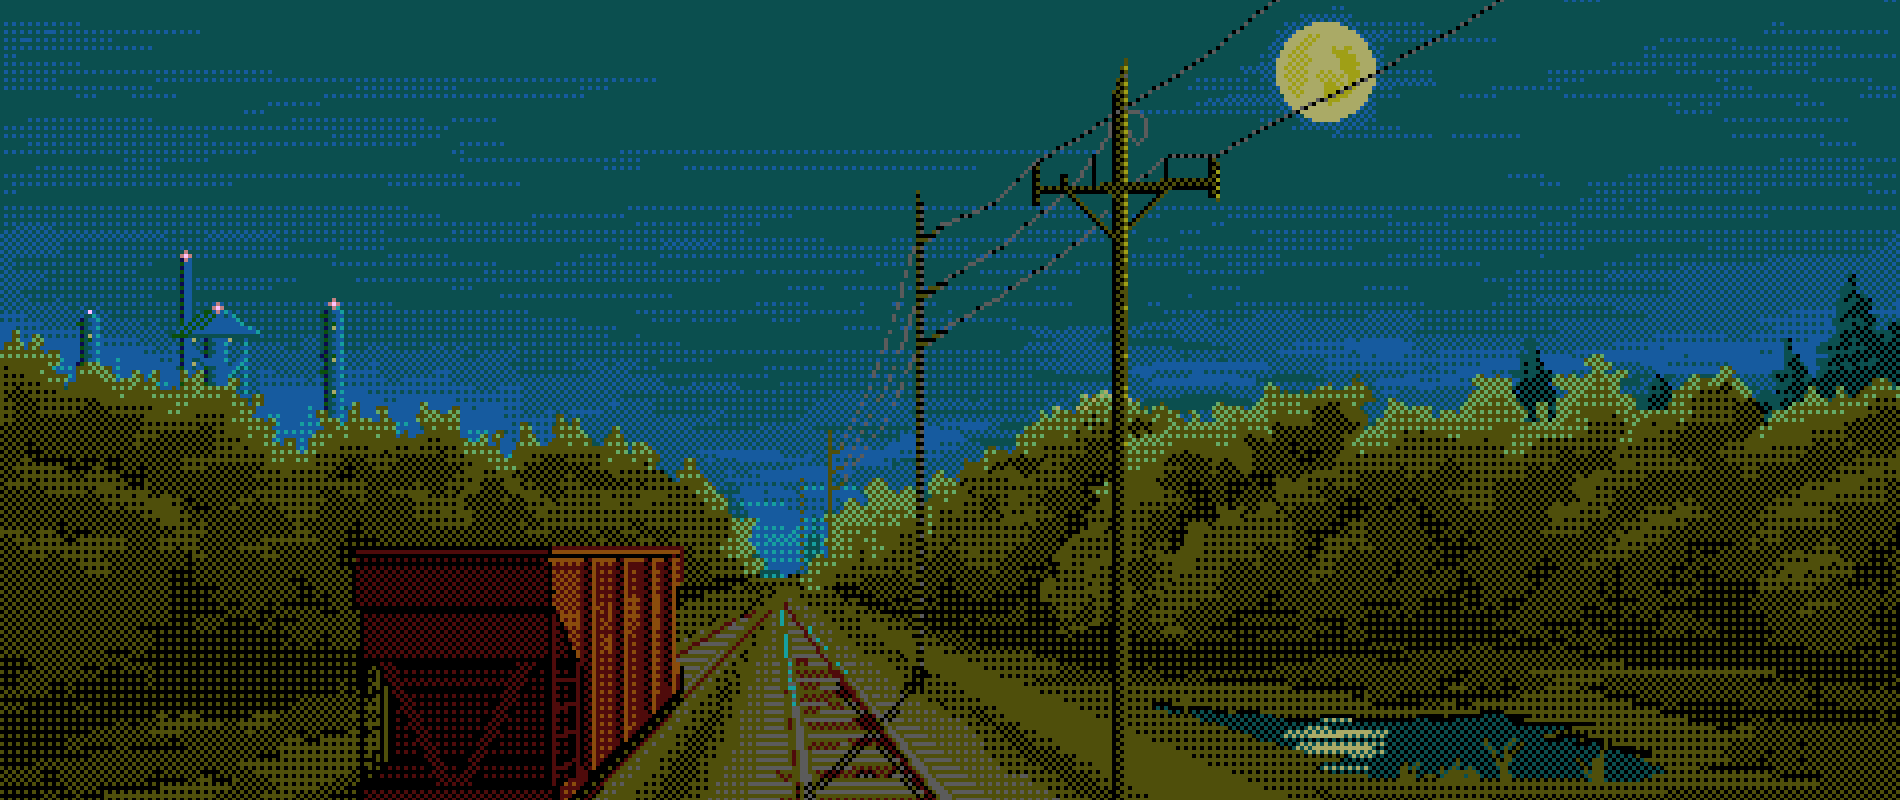 traintrack_1900x800.png